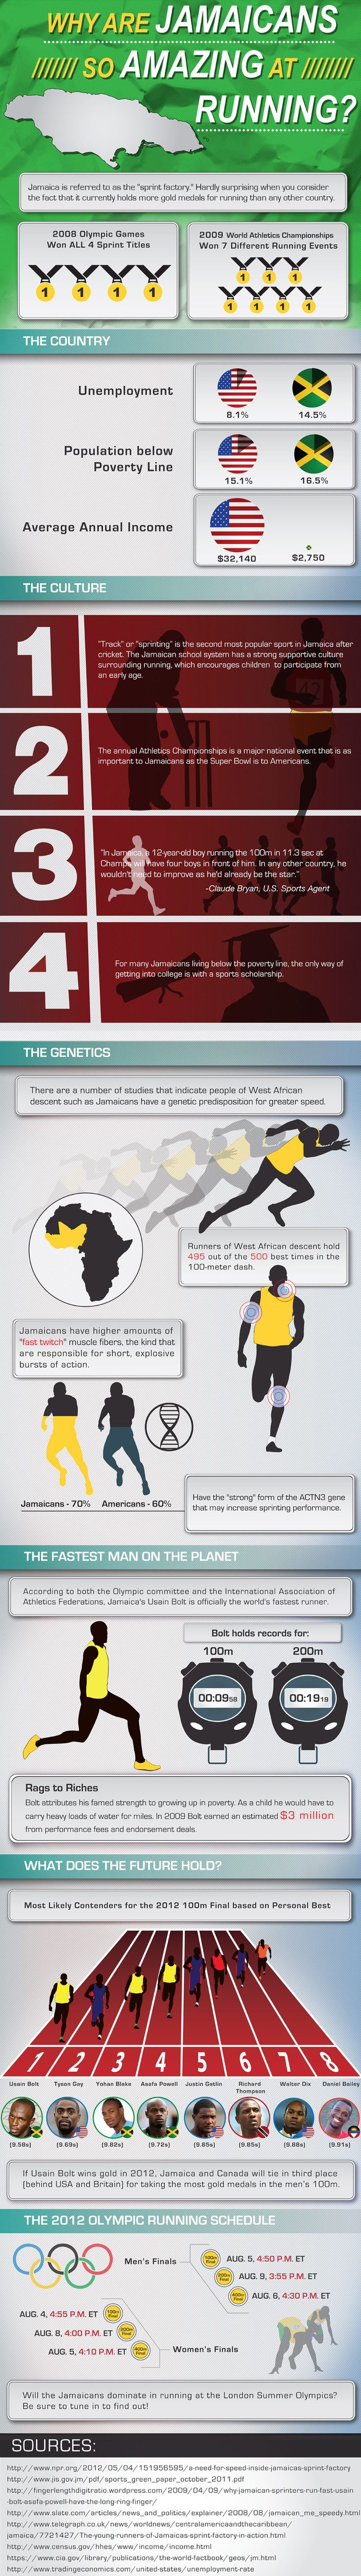 Why the Jamacains are so amazing at running. Infographic focused on the London 2012 Olympics